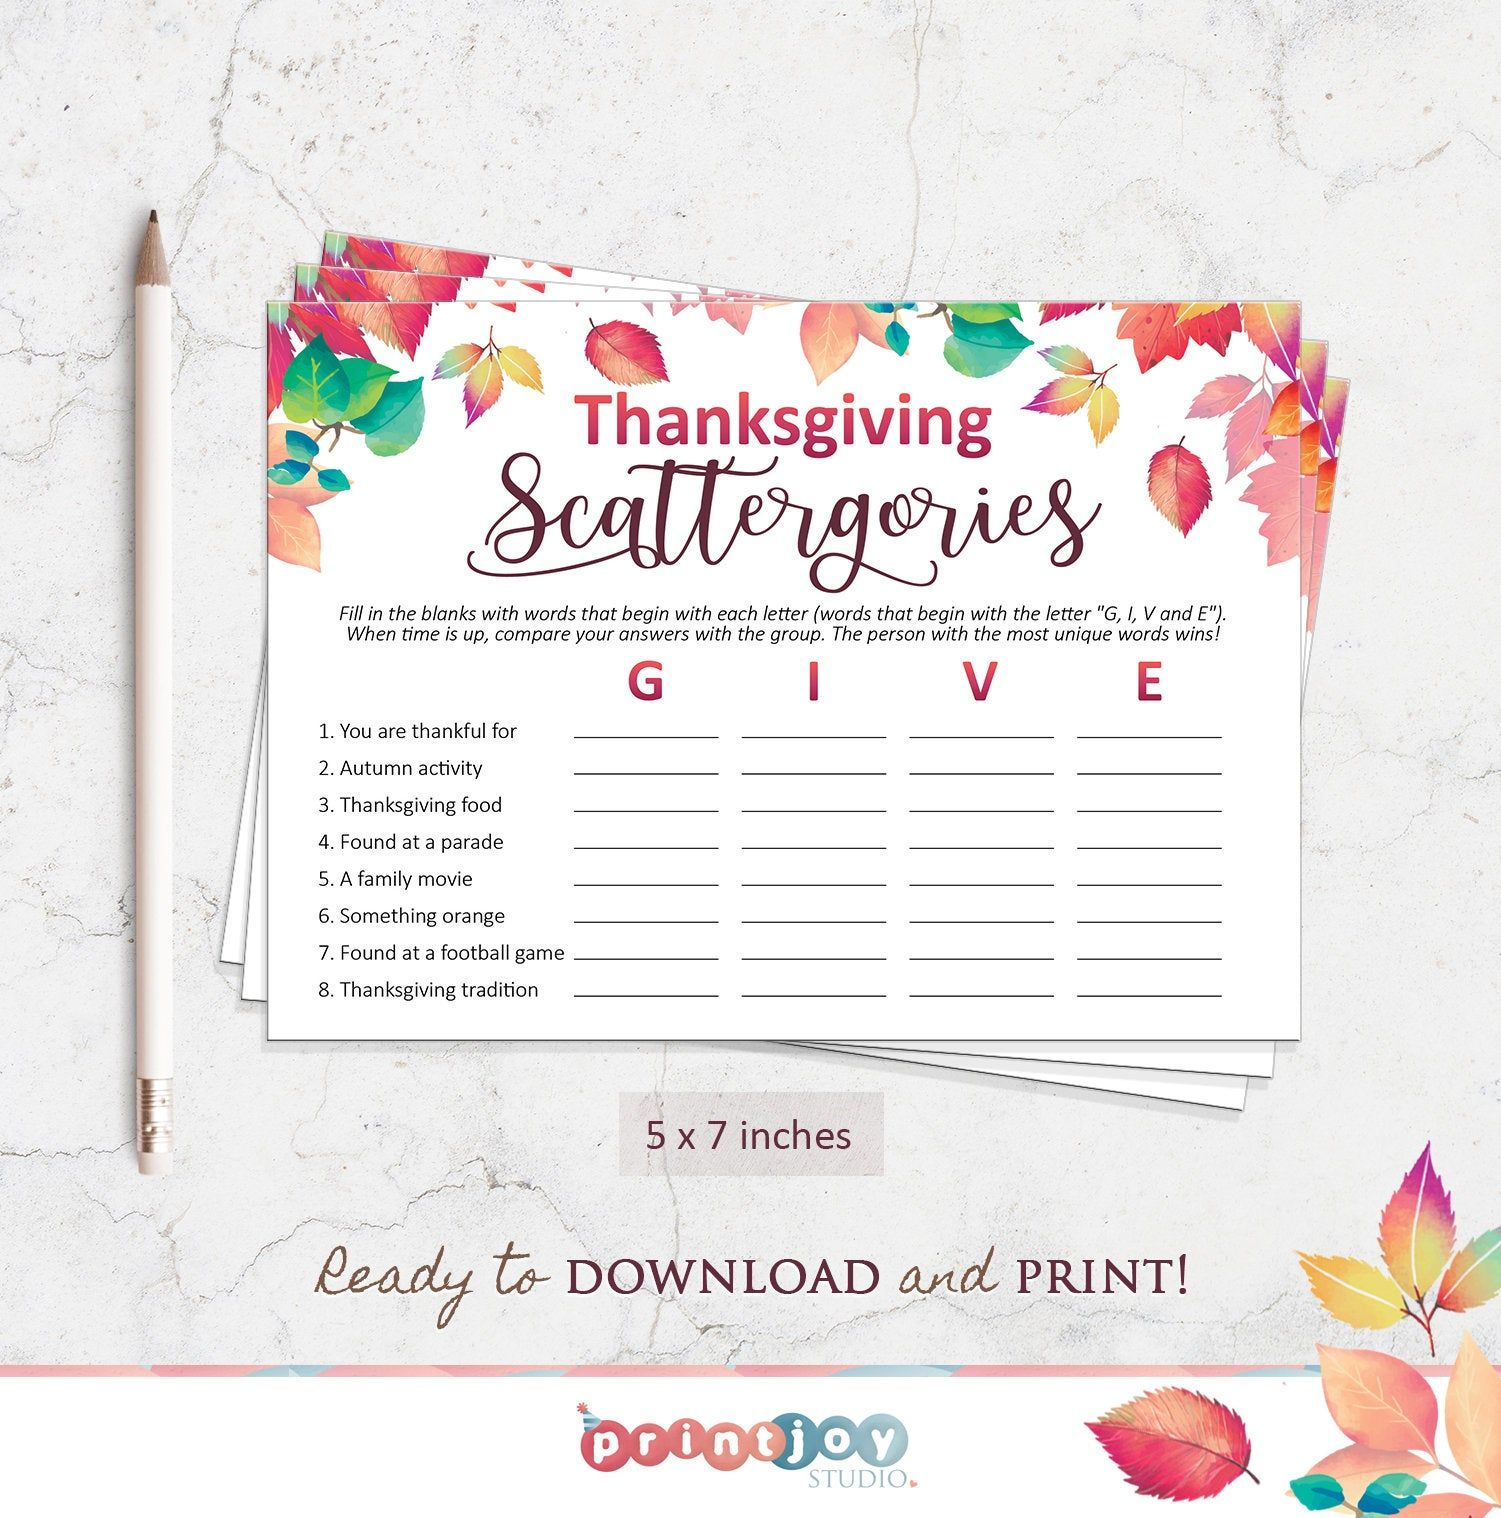 Thanksgiving Games, Printable Scattergories Game for